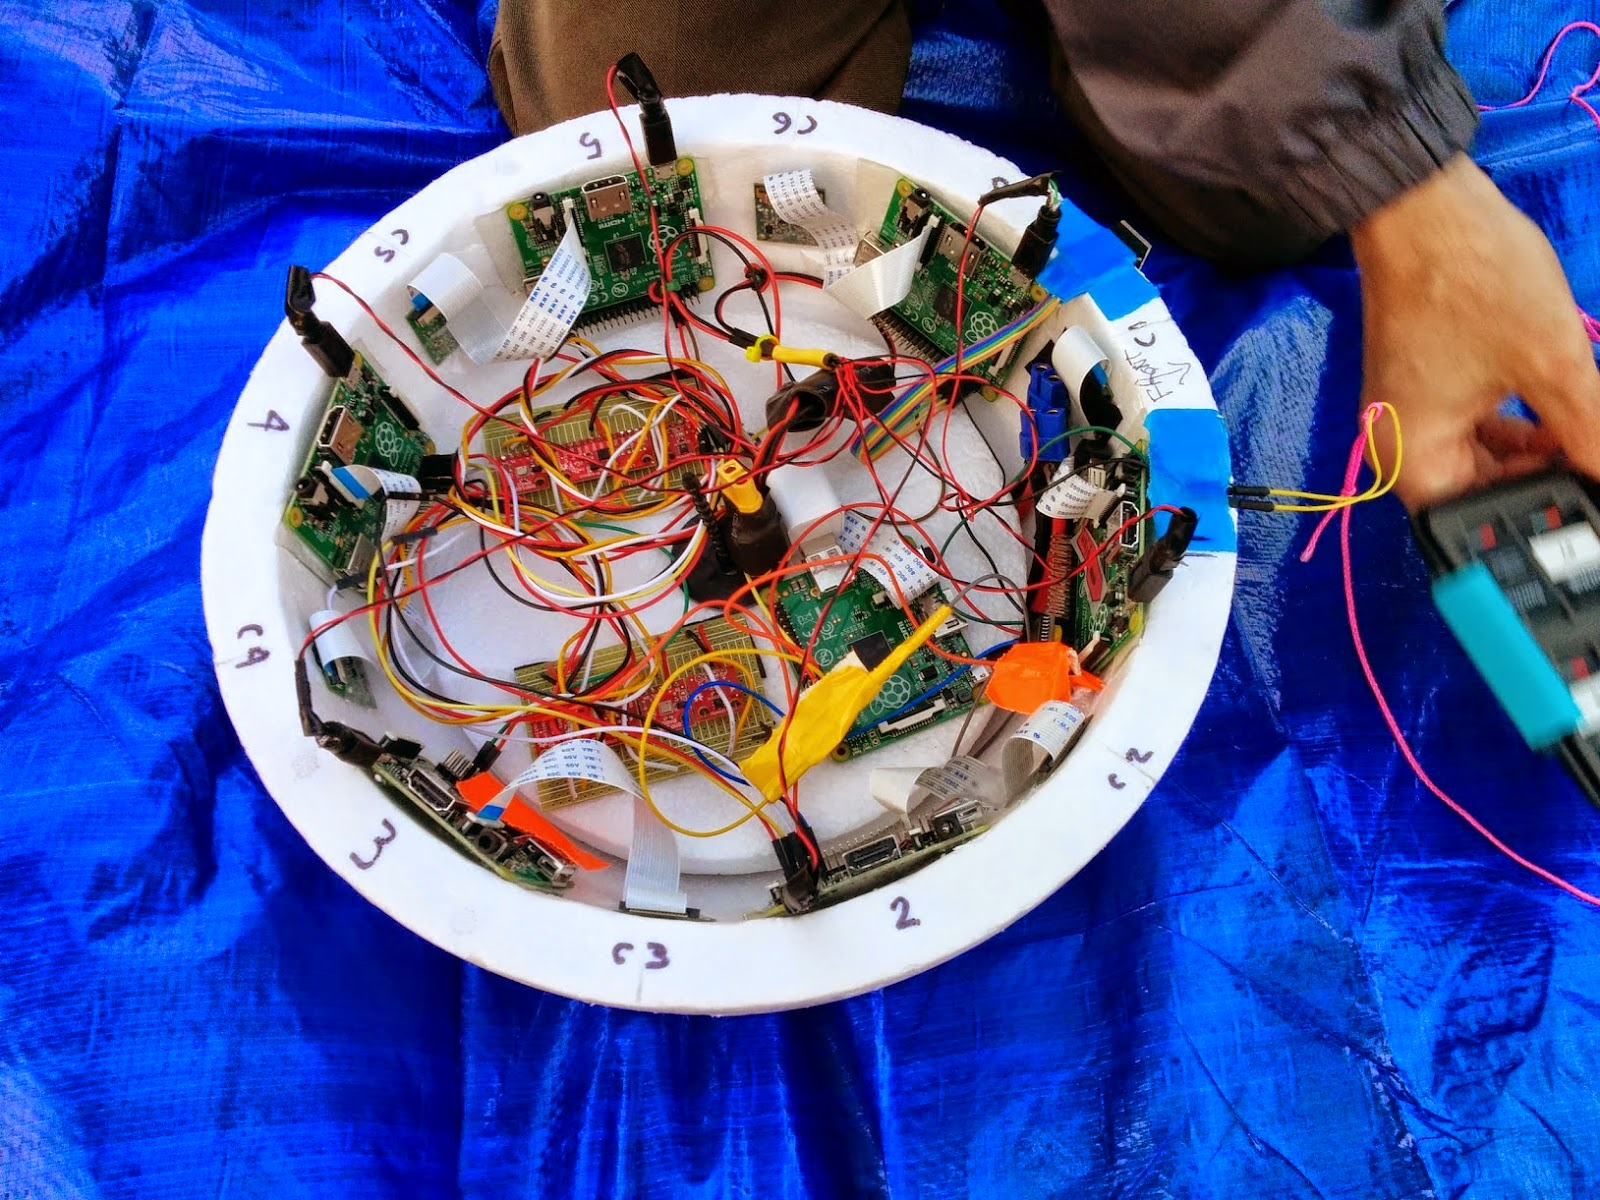 The Computer Network In Space Part 2 Wiringpi2 Python I2c A Satellite Or Bowl Of Spaghetti